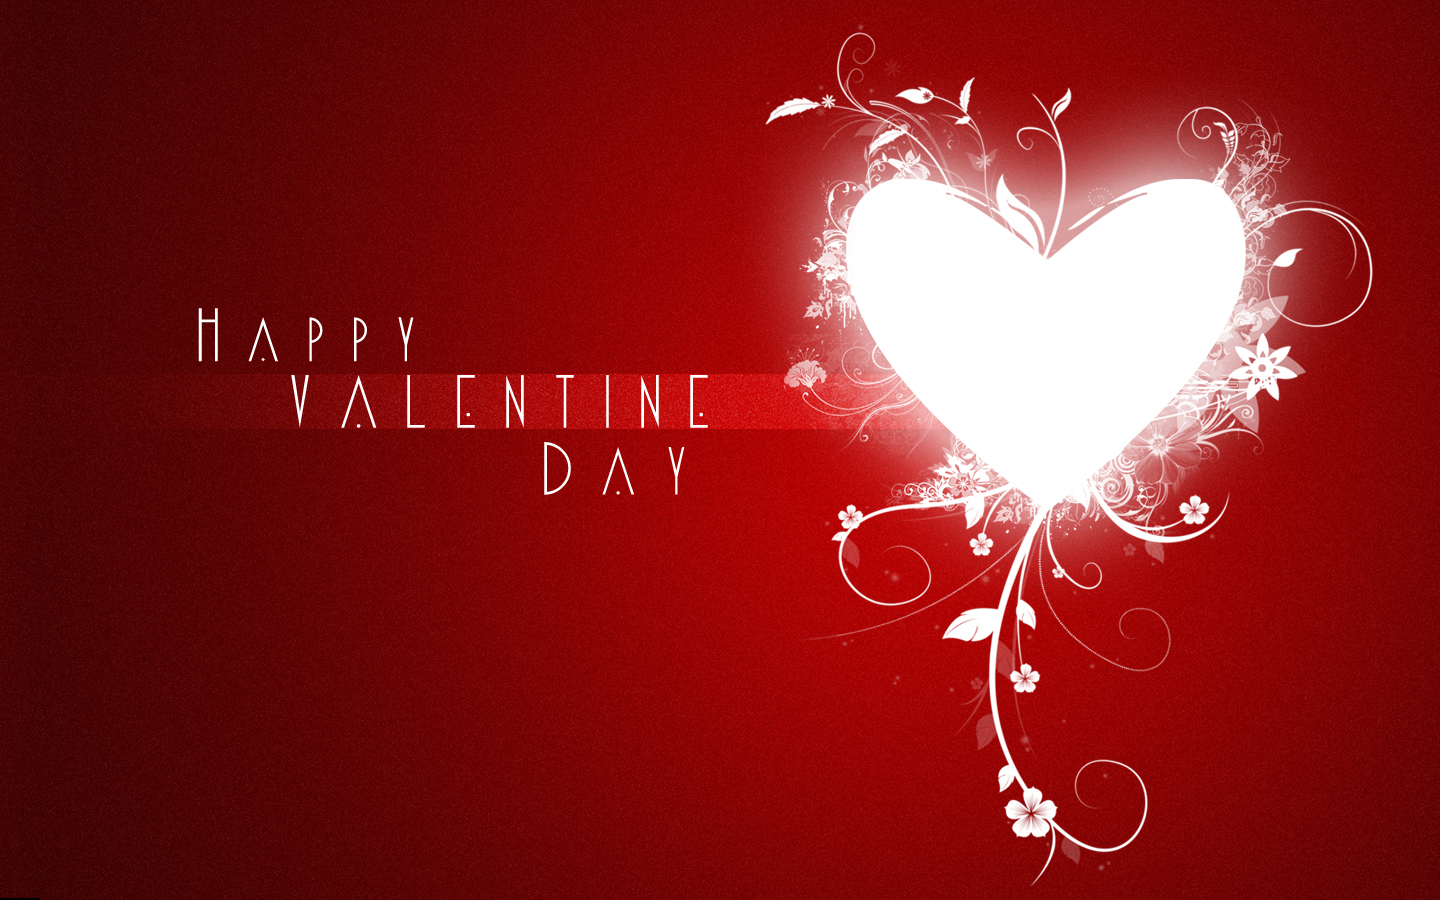 valentine - Pictures Of Valentine